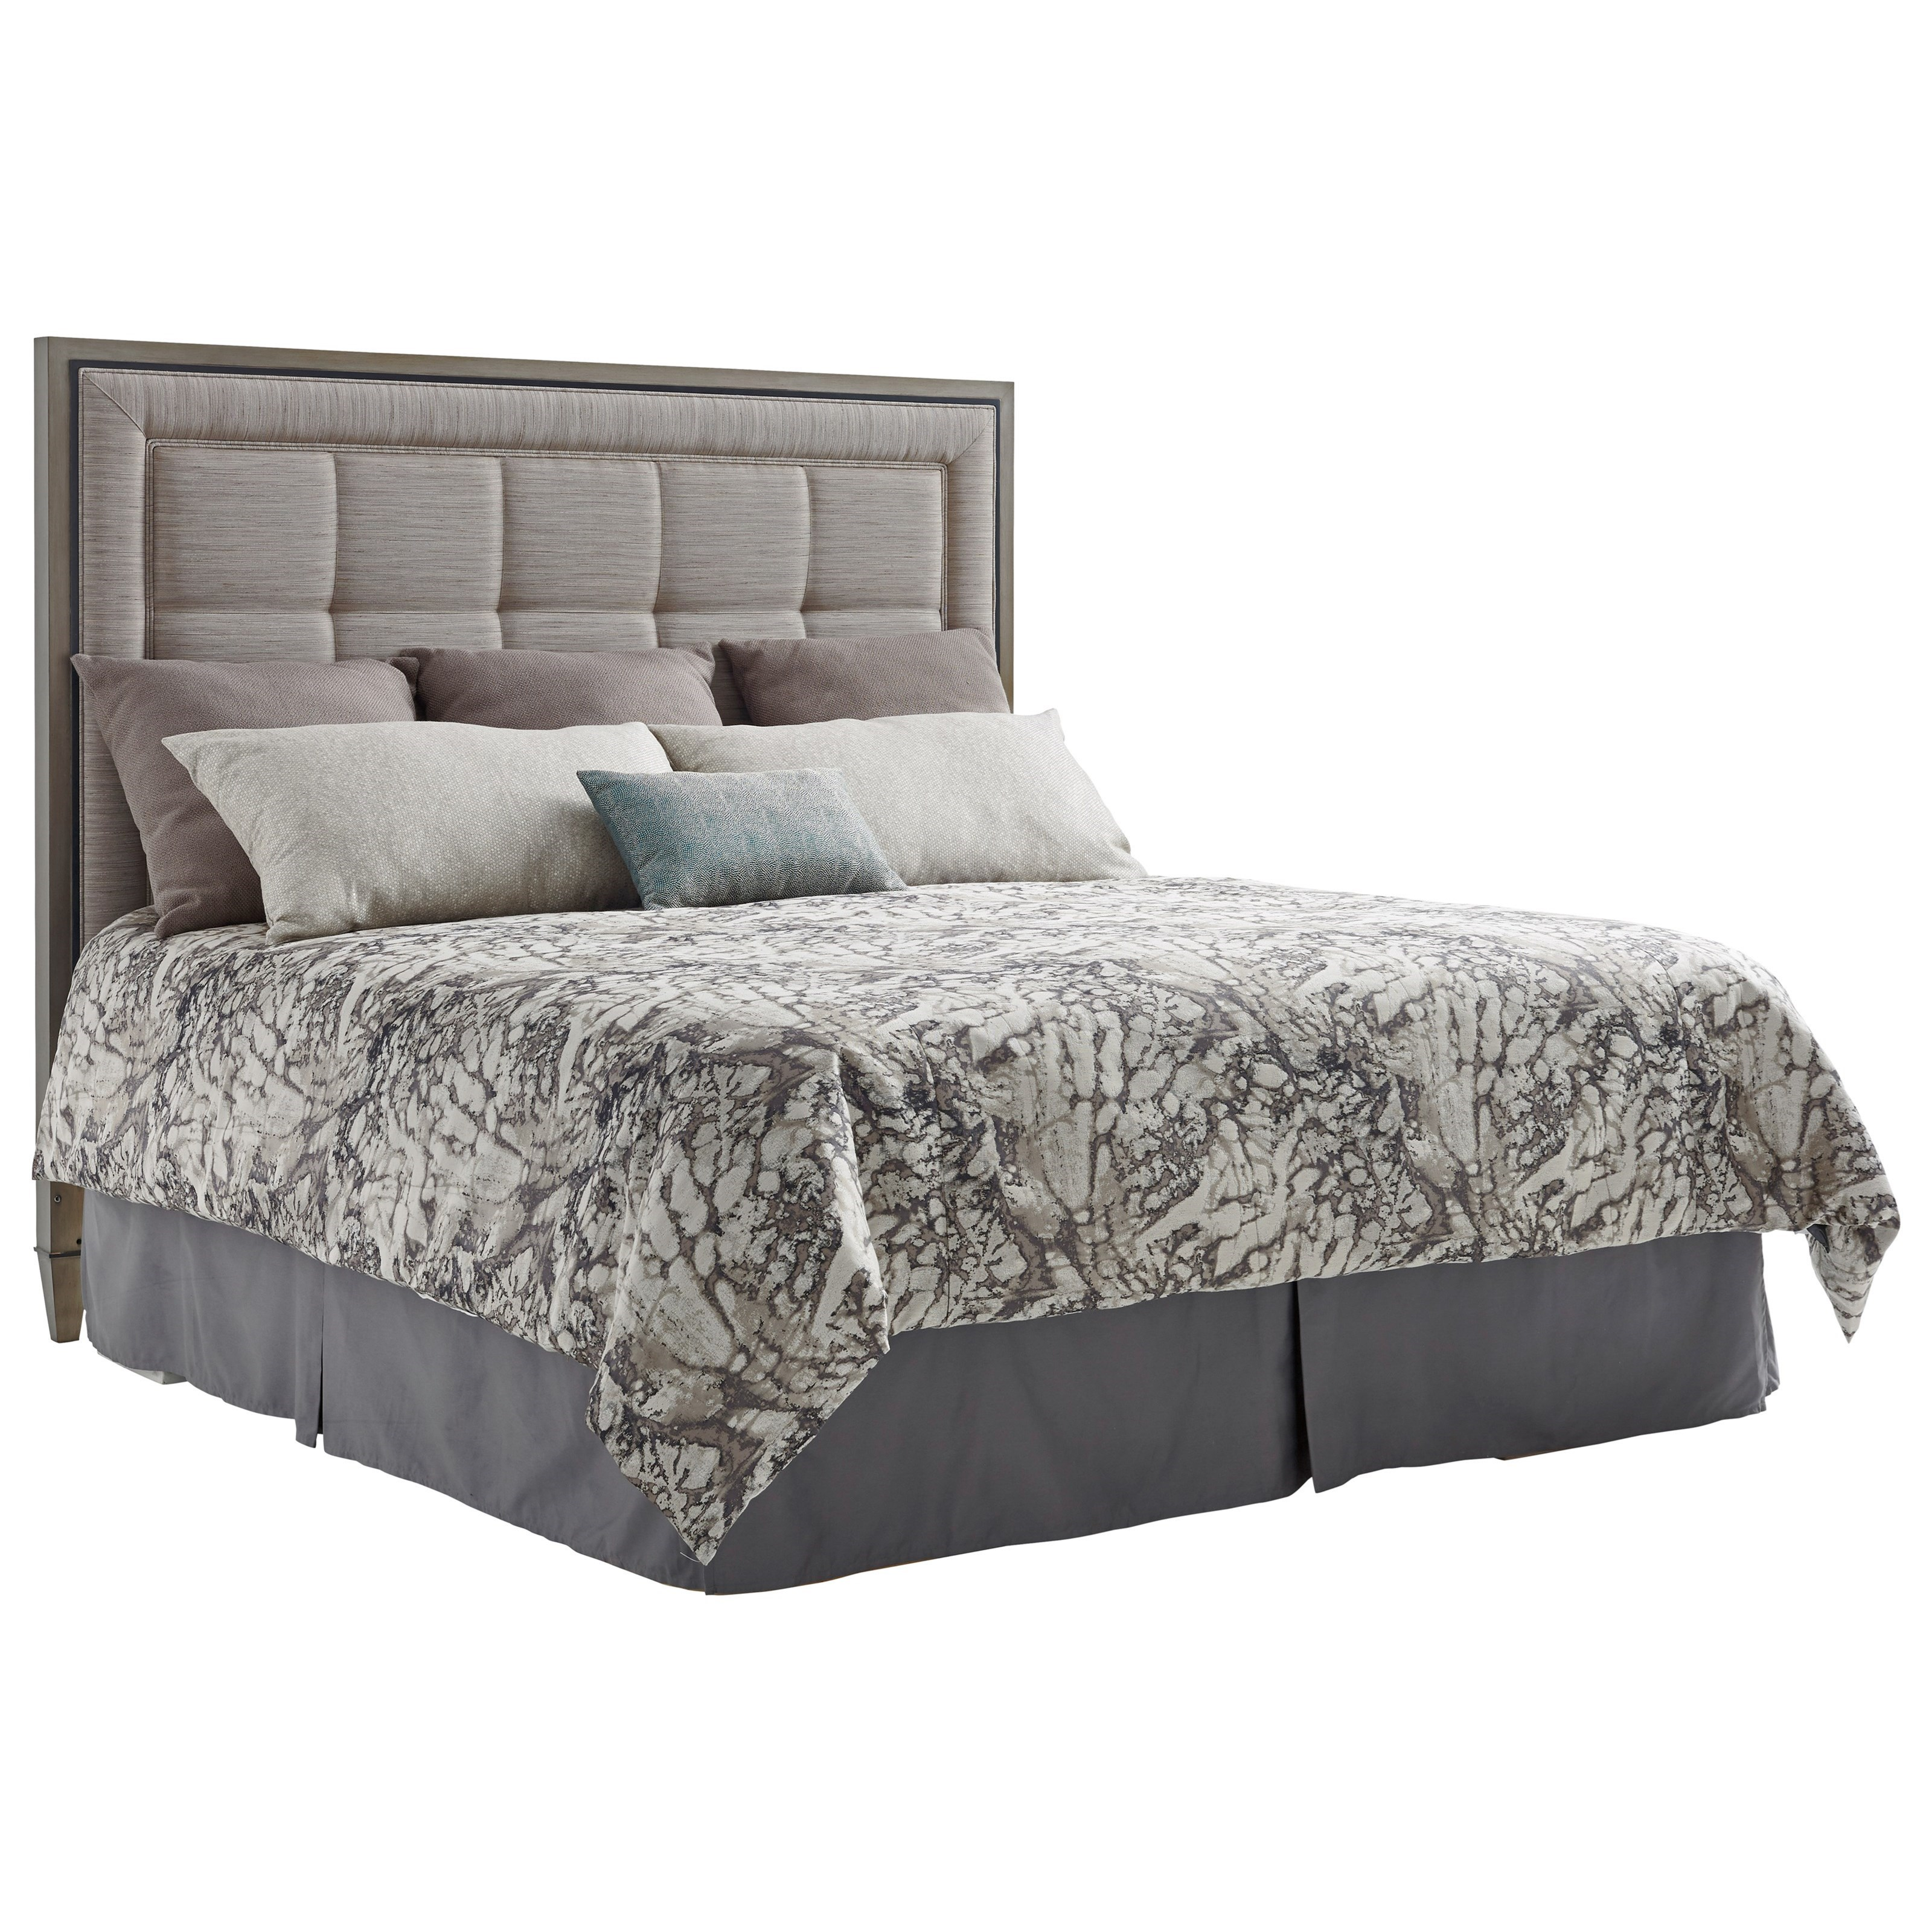 lexington ariana st tropez king size upholstered panel headboard in satenay gray johnny. Black Bedroom Furniture Sets. Home Design Ideas